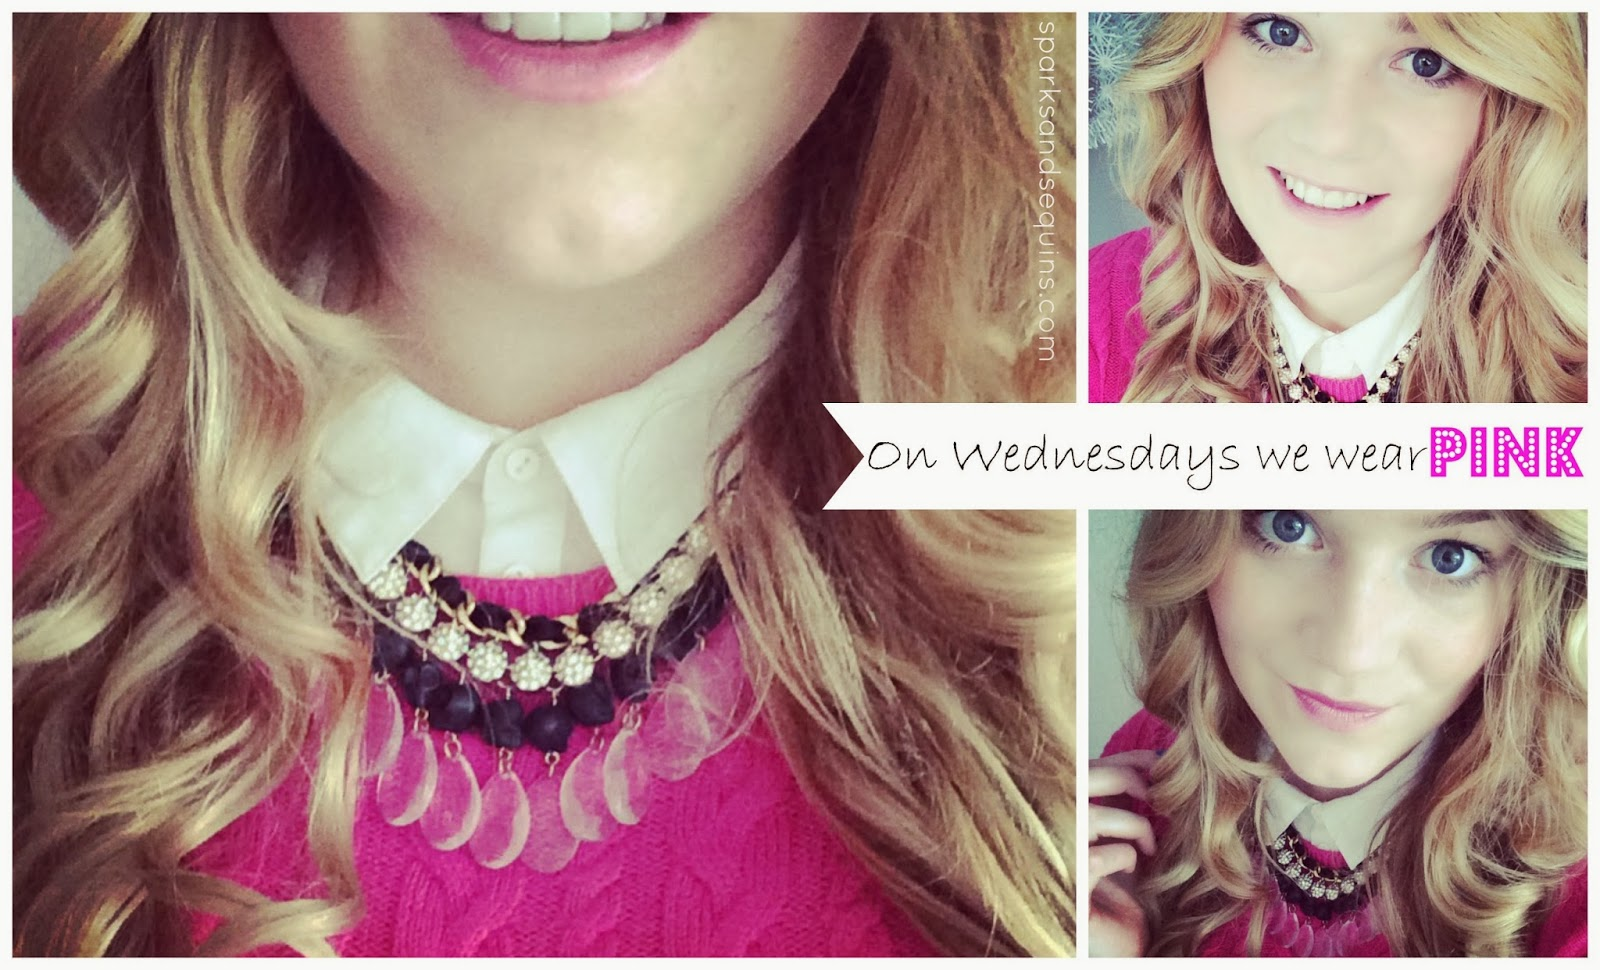 On Wednesdays We Wear Pink Tumblr Outfit  on wednesdays we wearOn Wednesdays We Wear Pink Tumblr Transparent